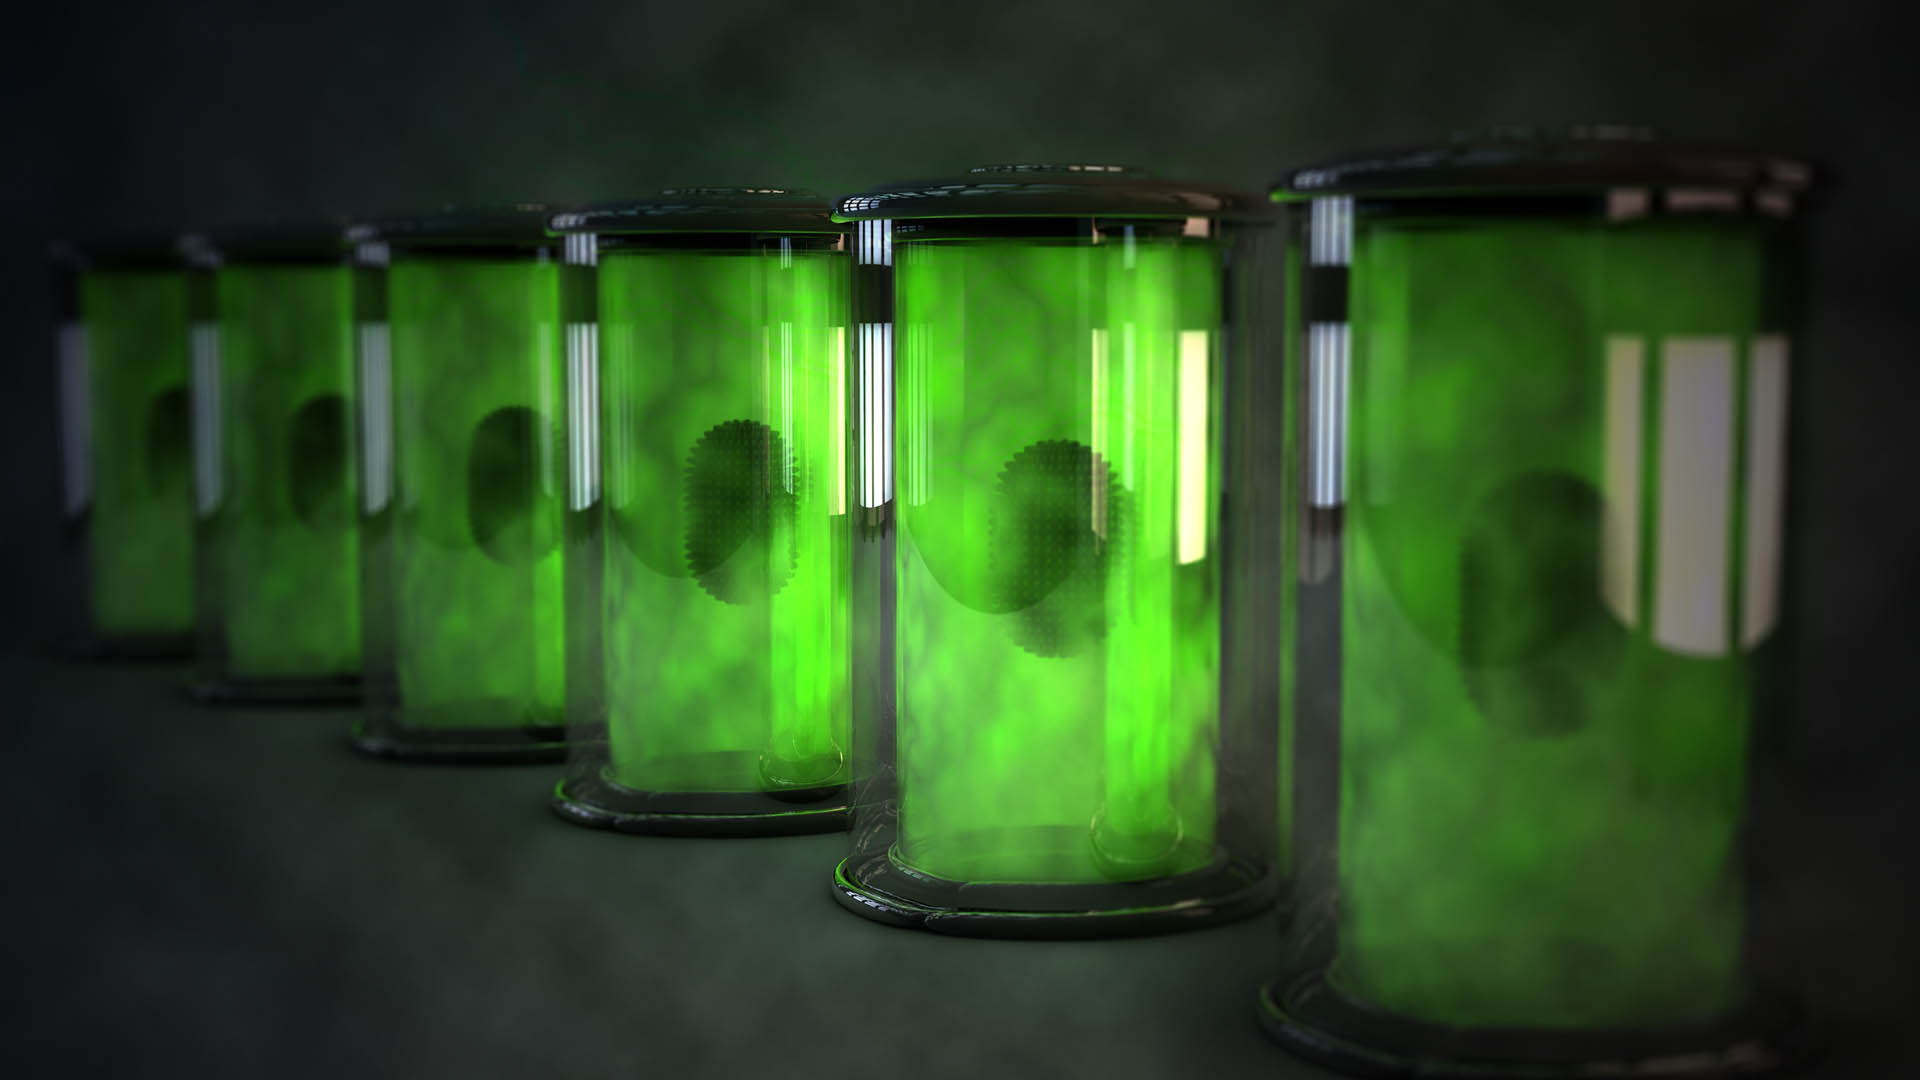 Physics And Chemistry Hd Wallpapers All Hd Wallpapers